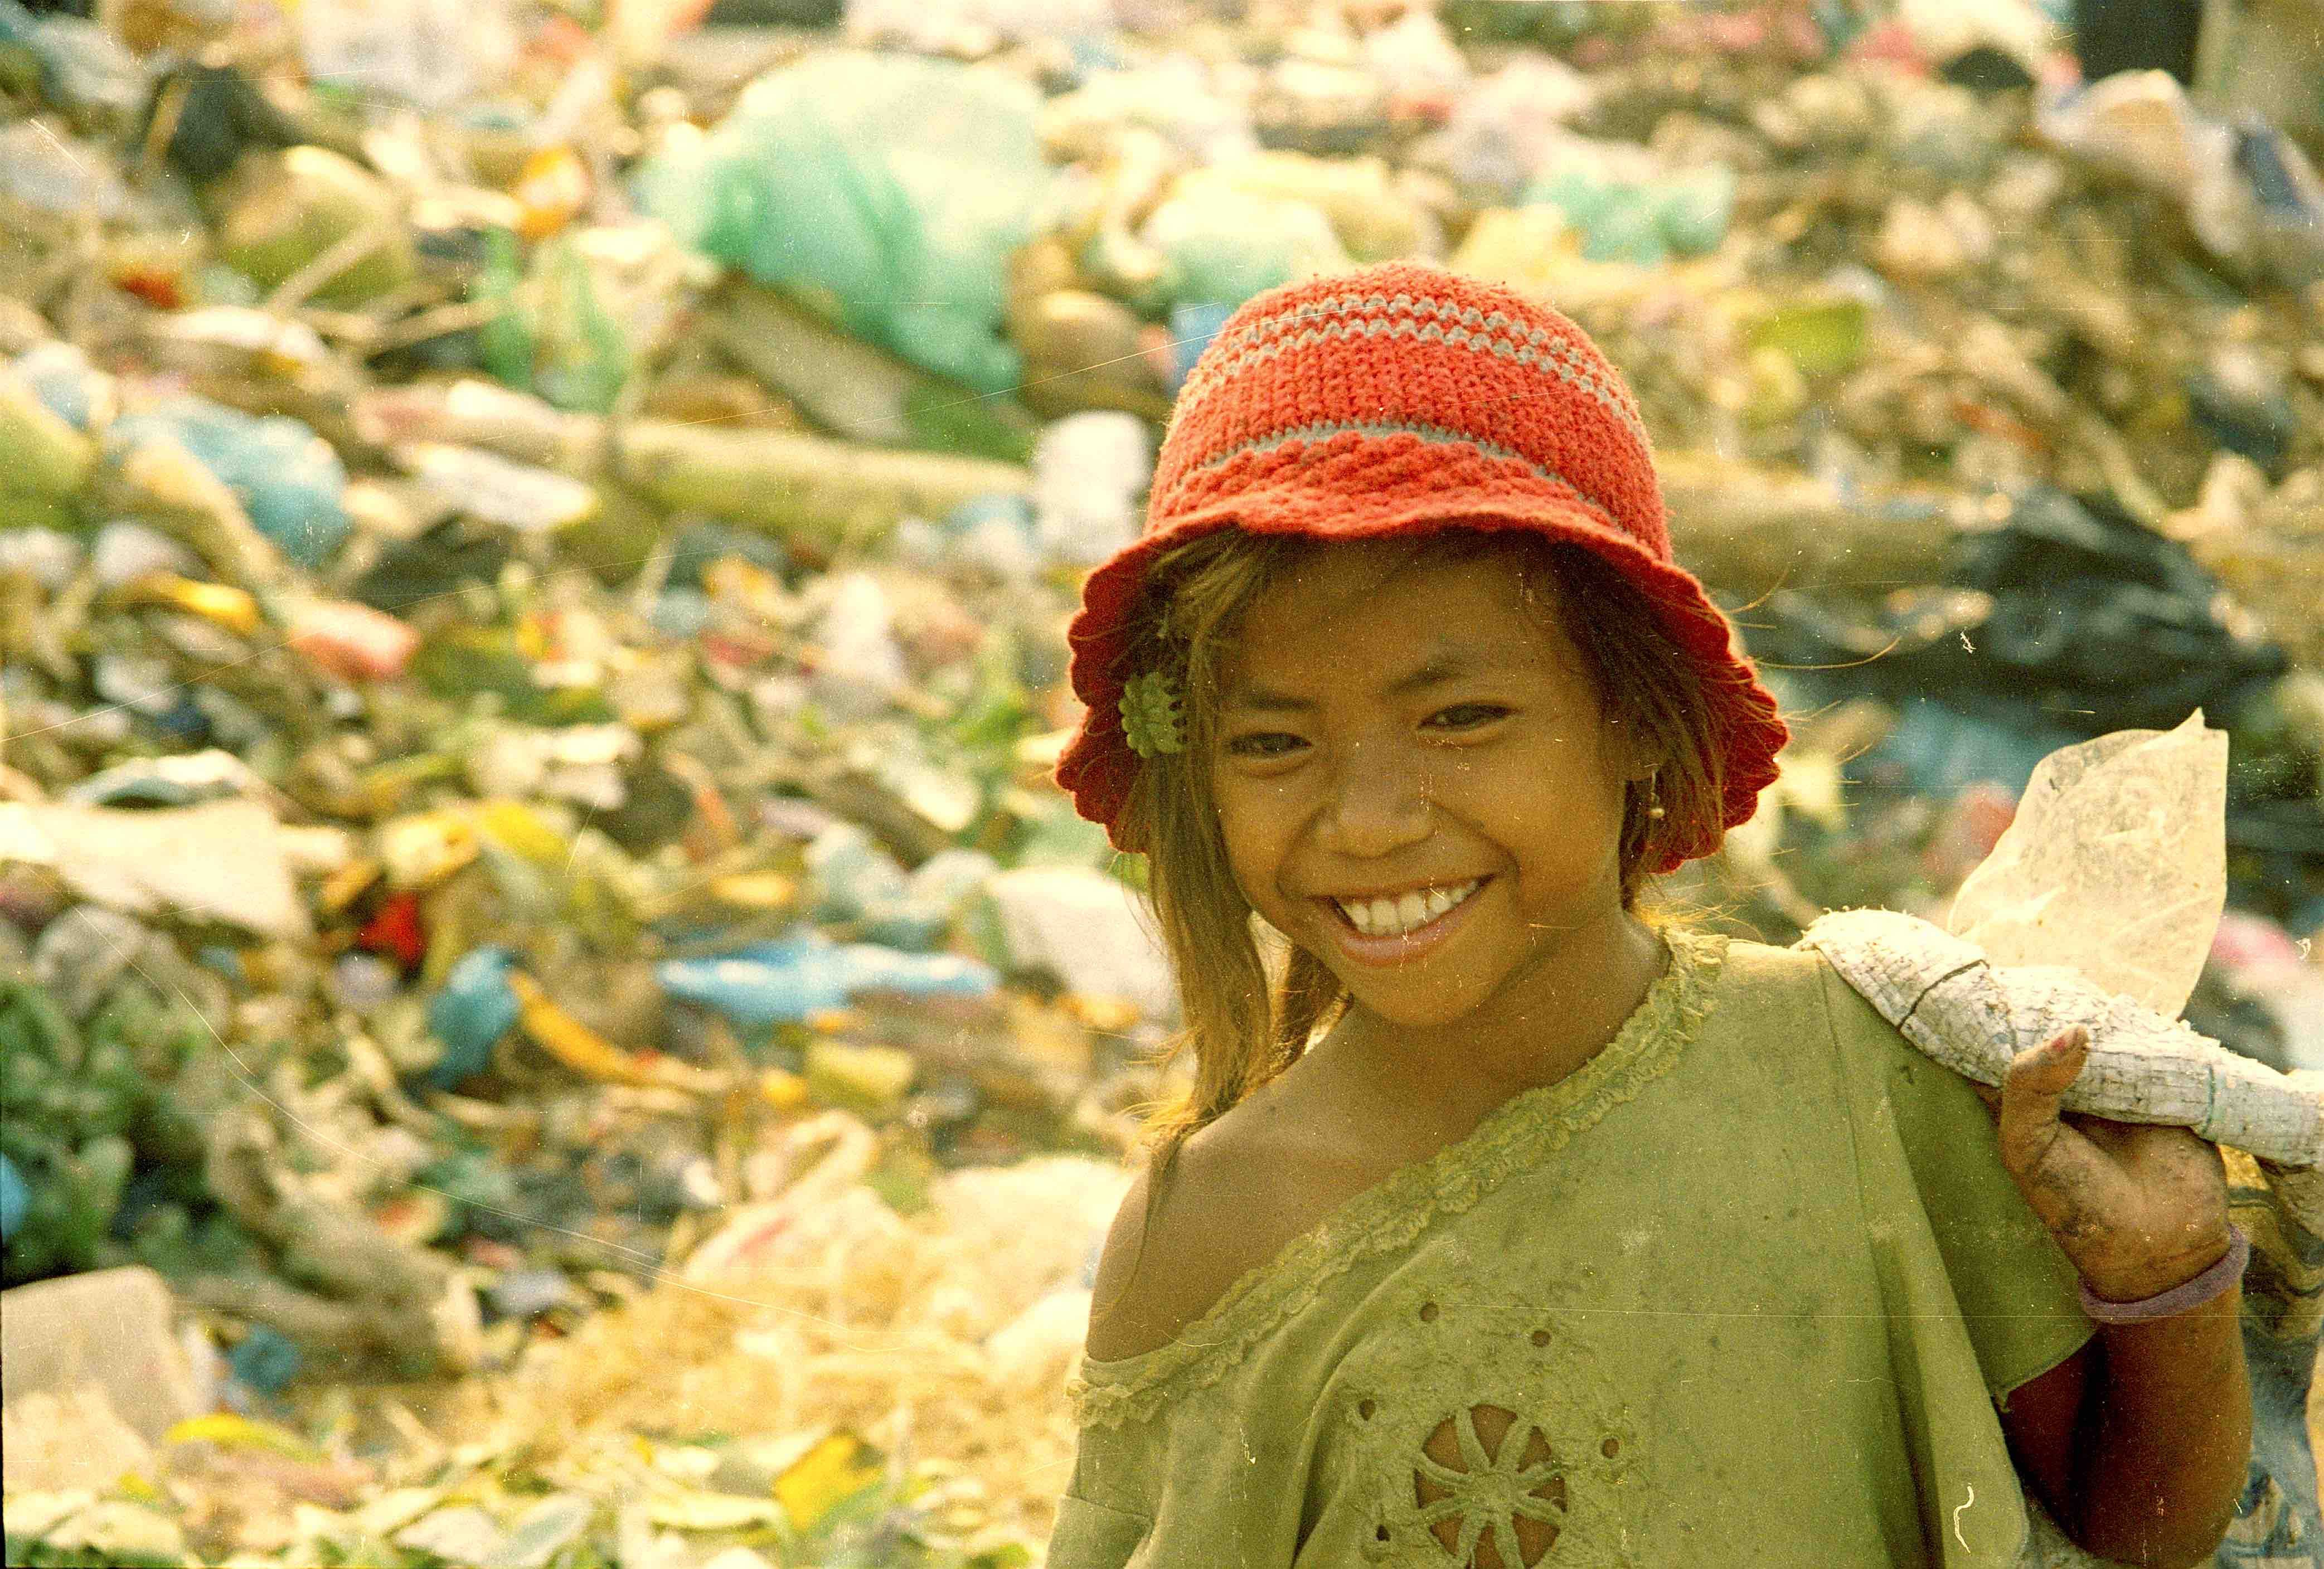 Image from Cambodian Children's Fund